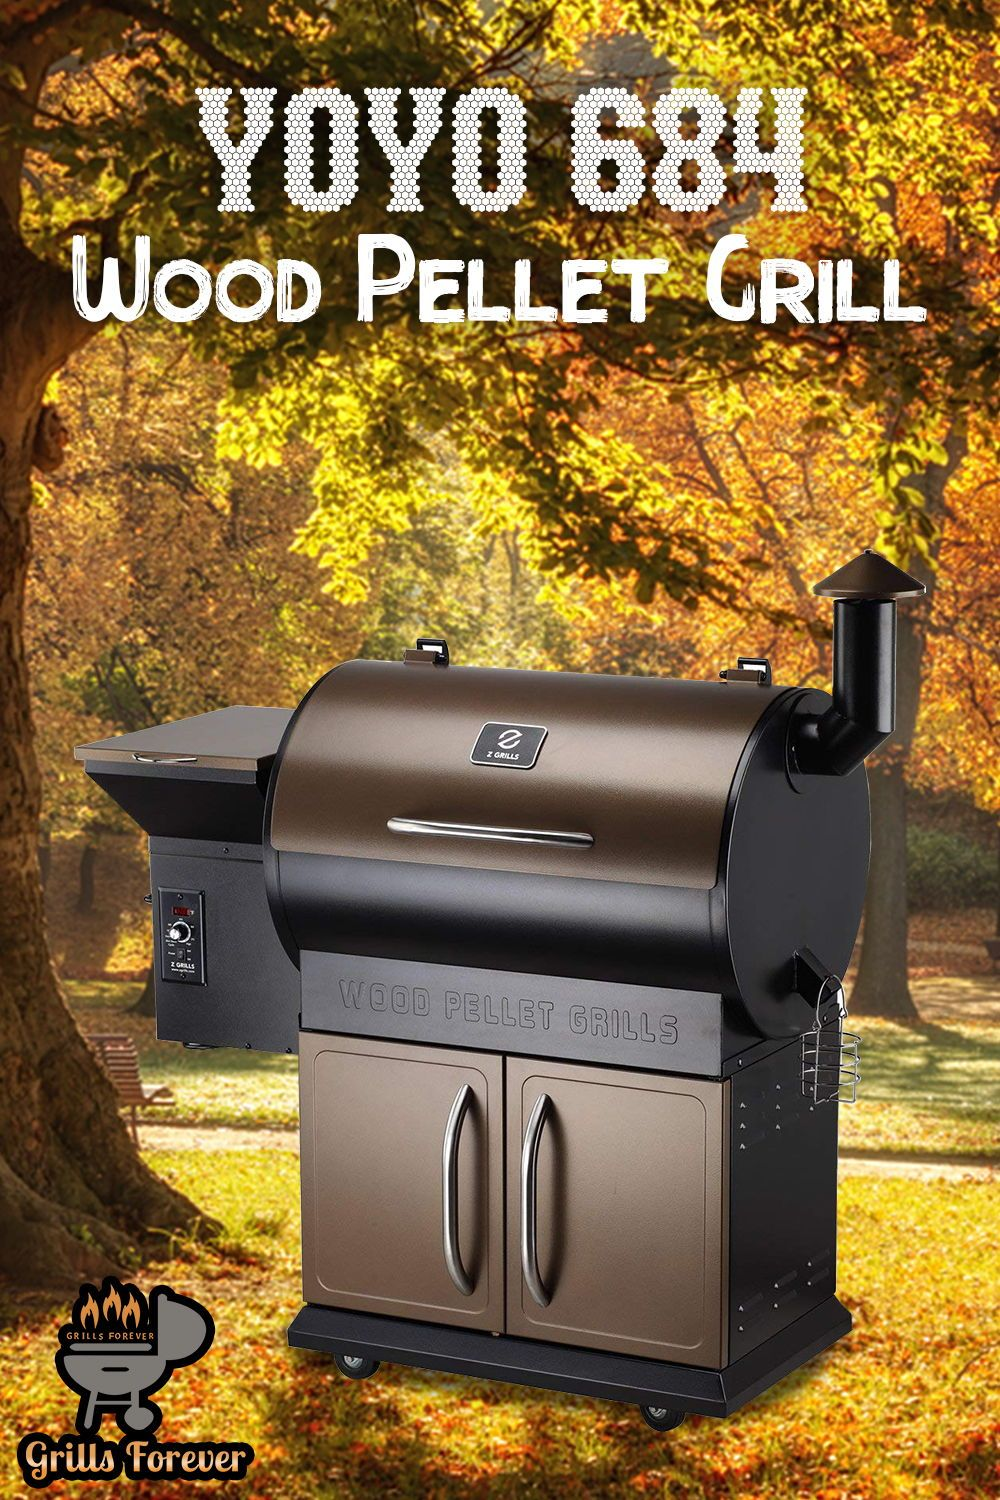 YOYO 684 Wood Pellet Grill Review | Top Grilling Brands